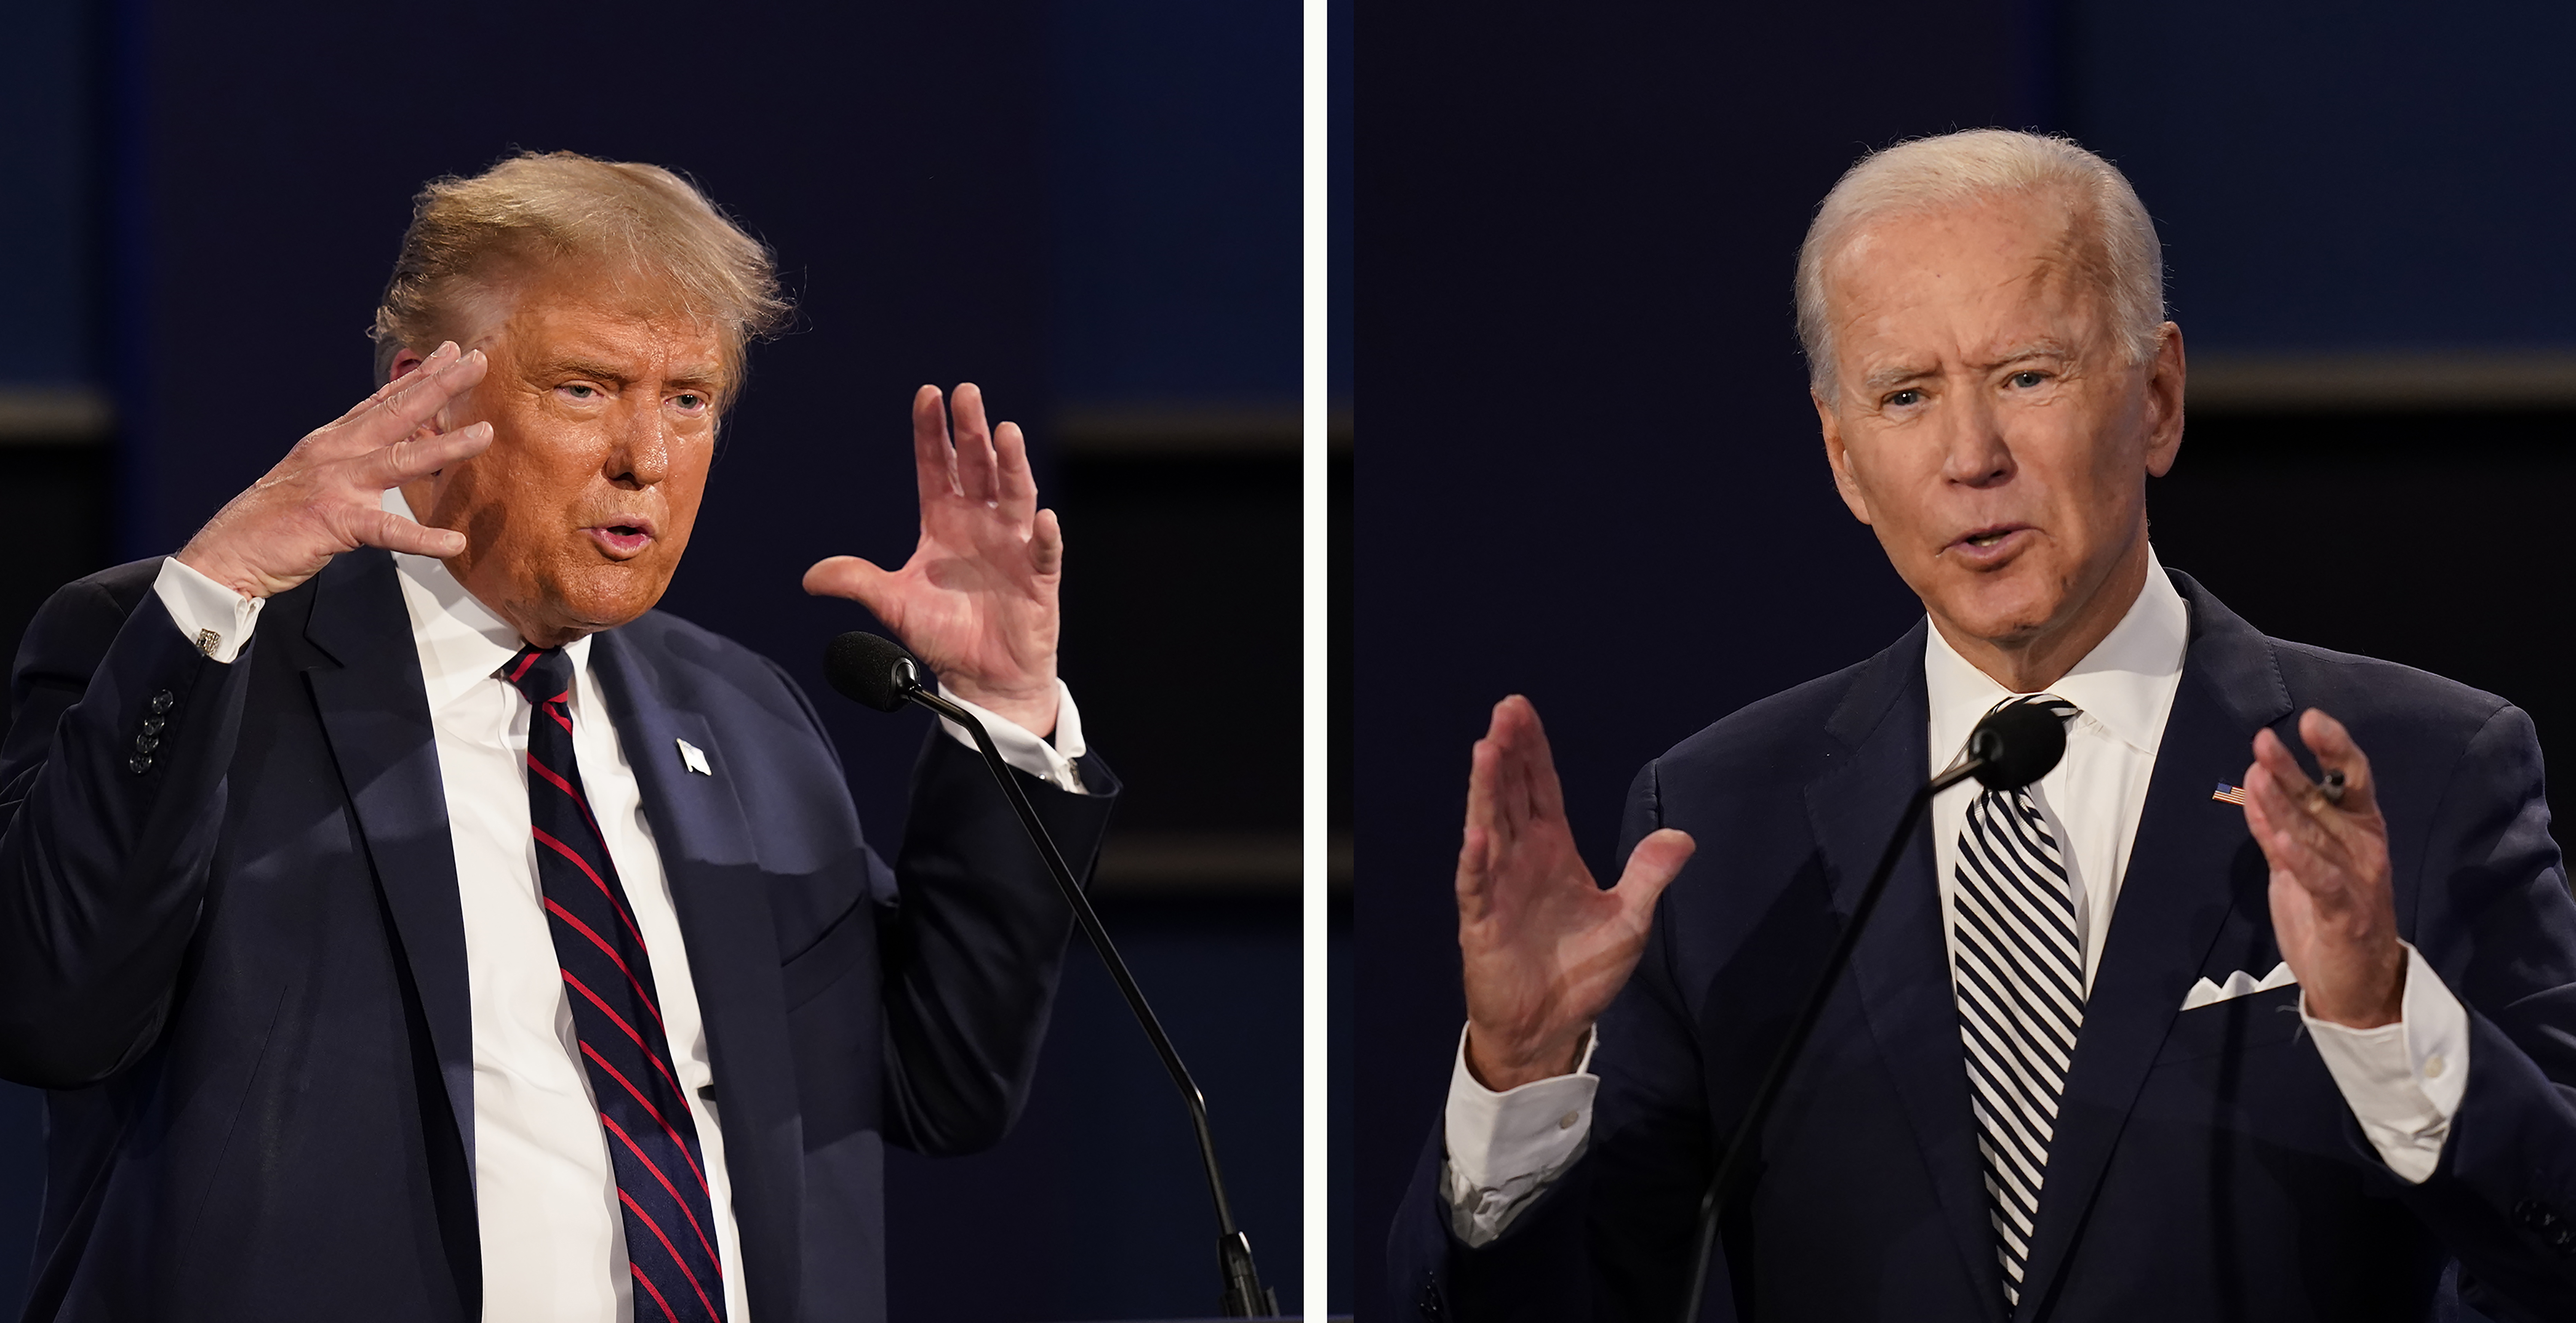 FILE - This combination of Sept. 29, 2020, file photos show President Donald Trump, left, and former Vice President Joe Biden during the first presidential debate at Case Western University and Cleveland Clinic, in Cleveland, Ohio. The Commission on Presidential Debates says the second Trump-Biden debate will be u2018virtualu2019 amid concerns about the president's COVID-19. Photo: AP